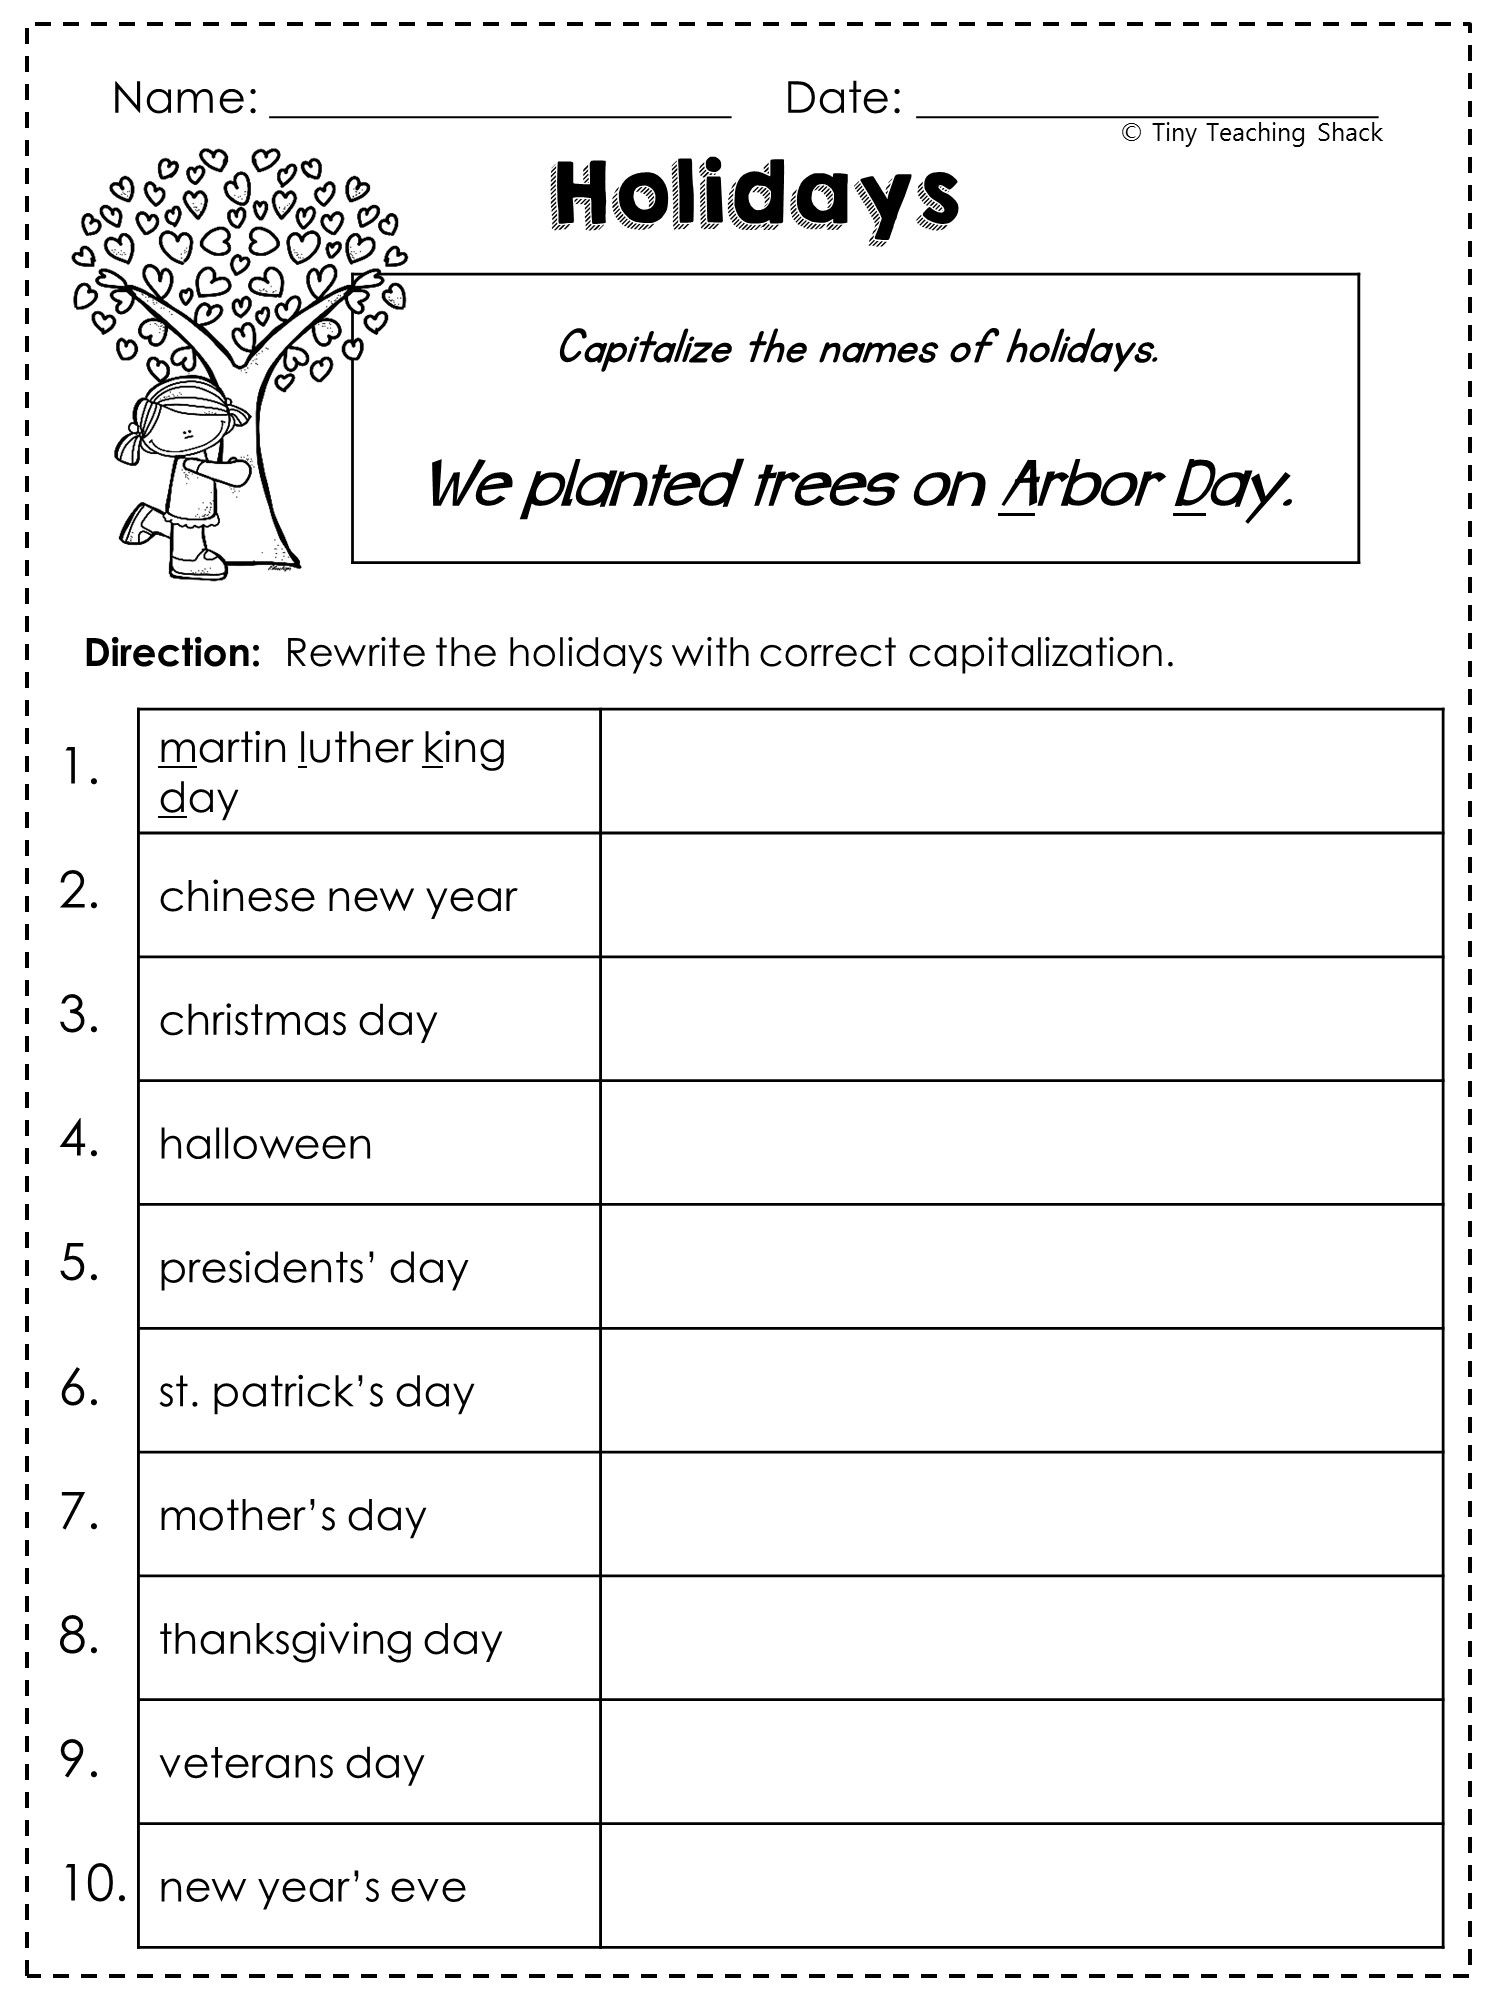 Teach Child How To Read Free Printable Capitalization